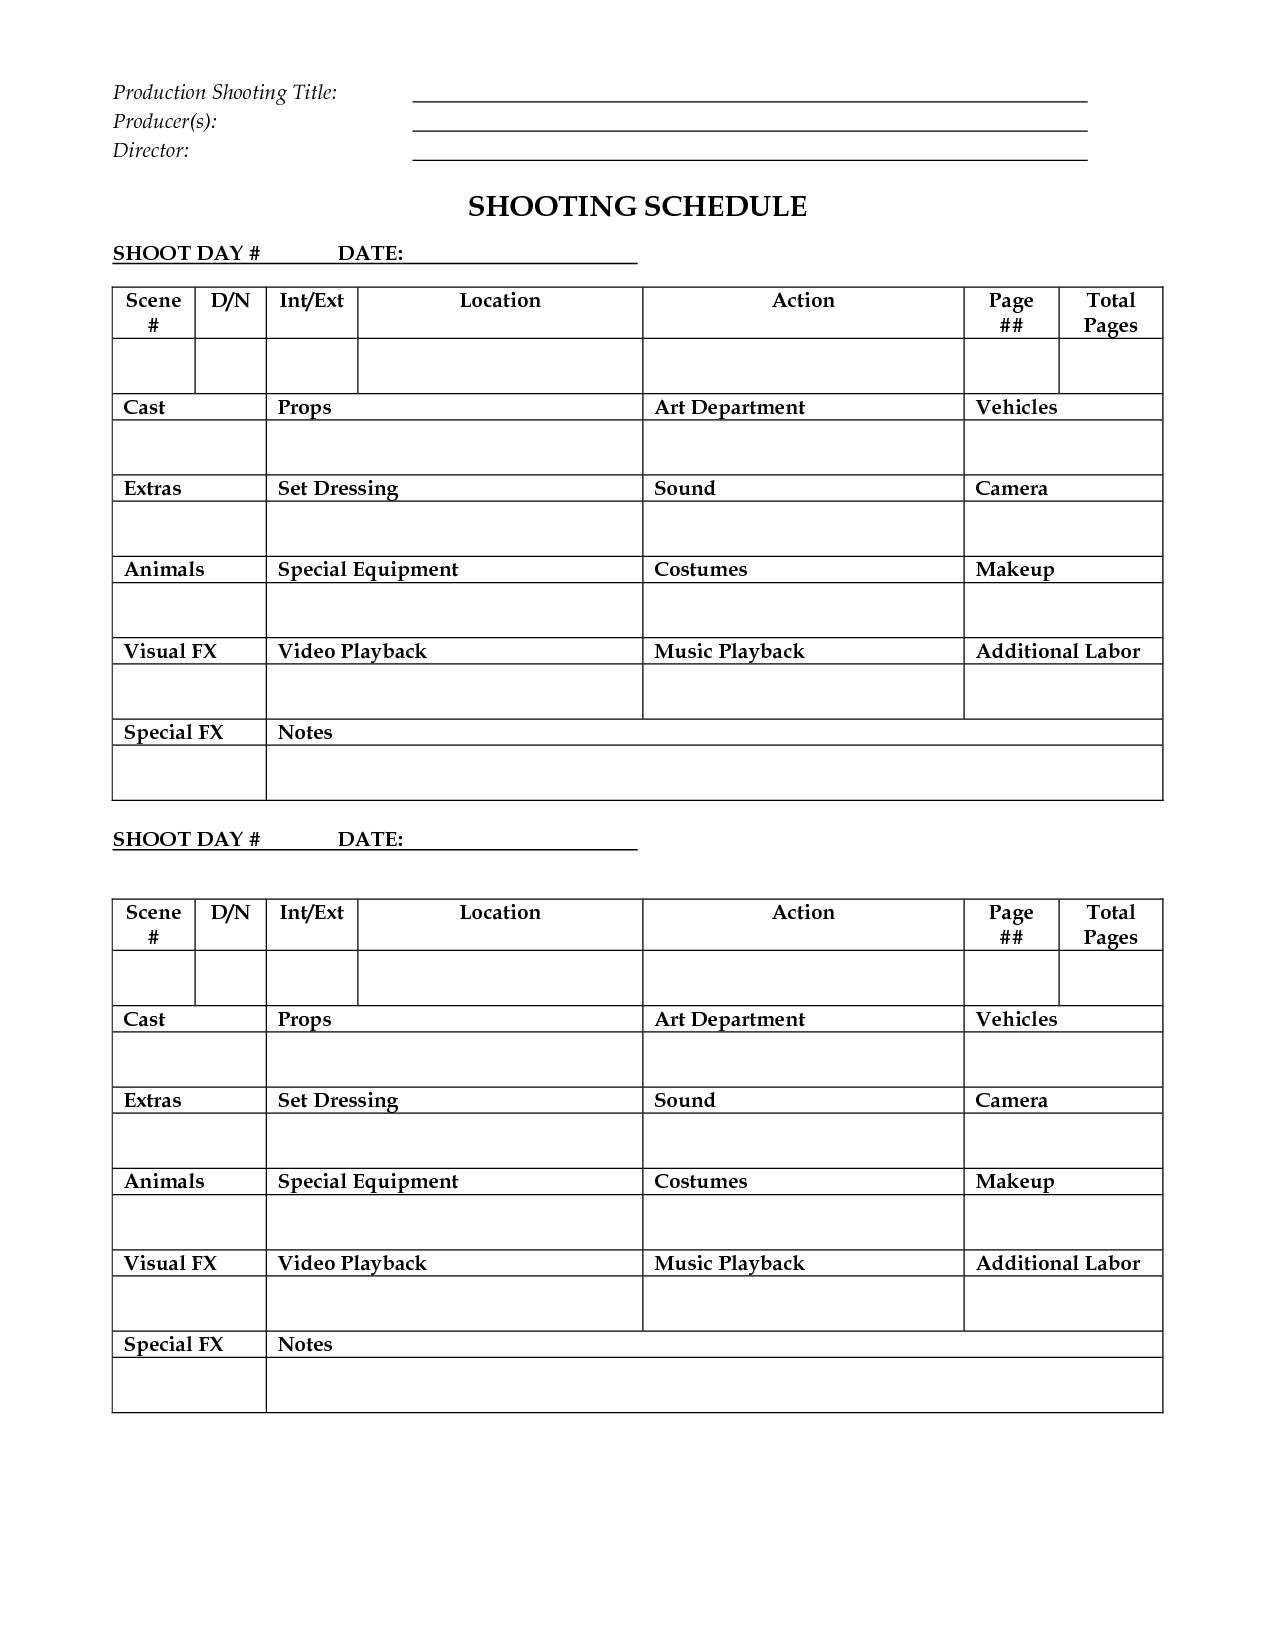 Shooting schedule template | 72 Hour Filmfest | Pinterest ...